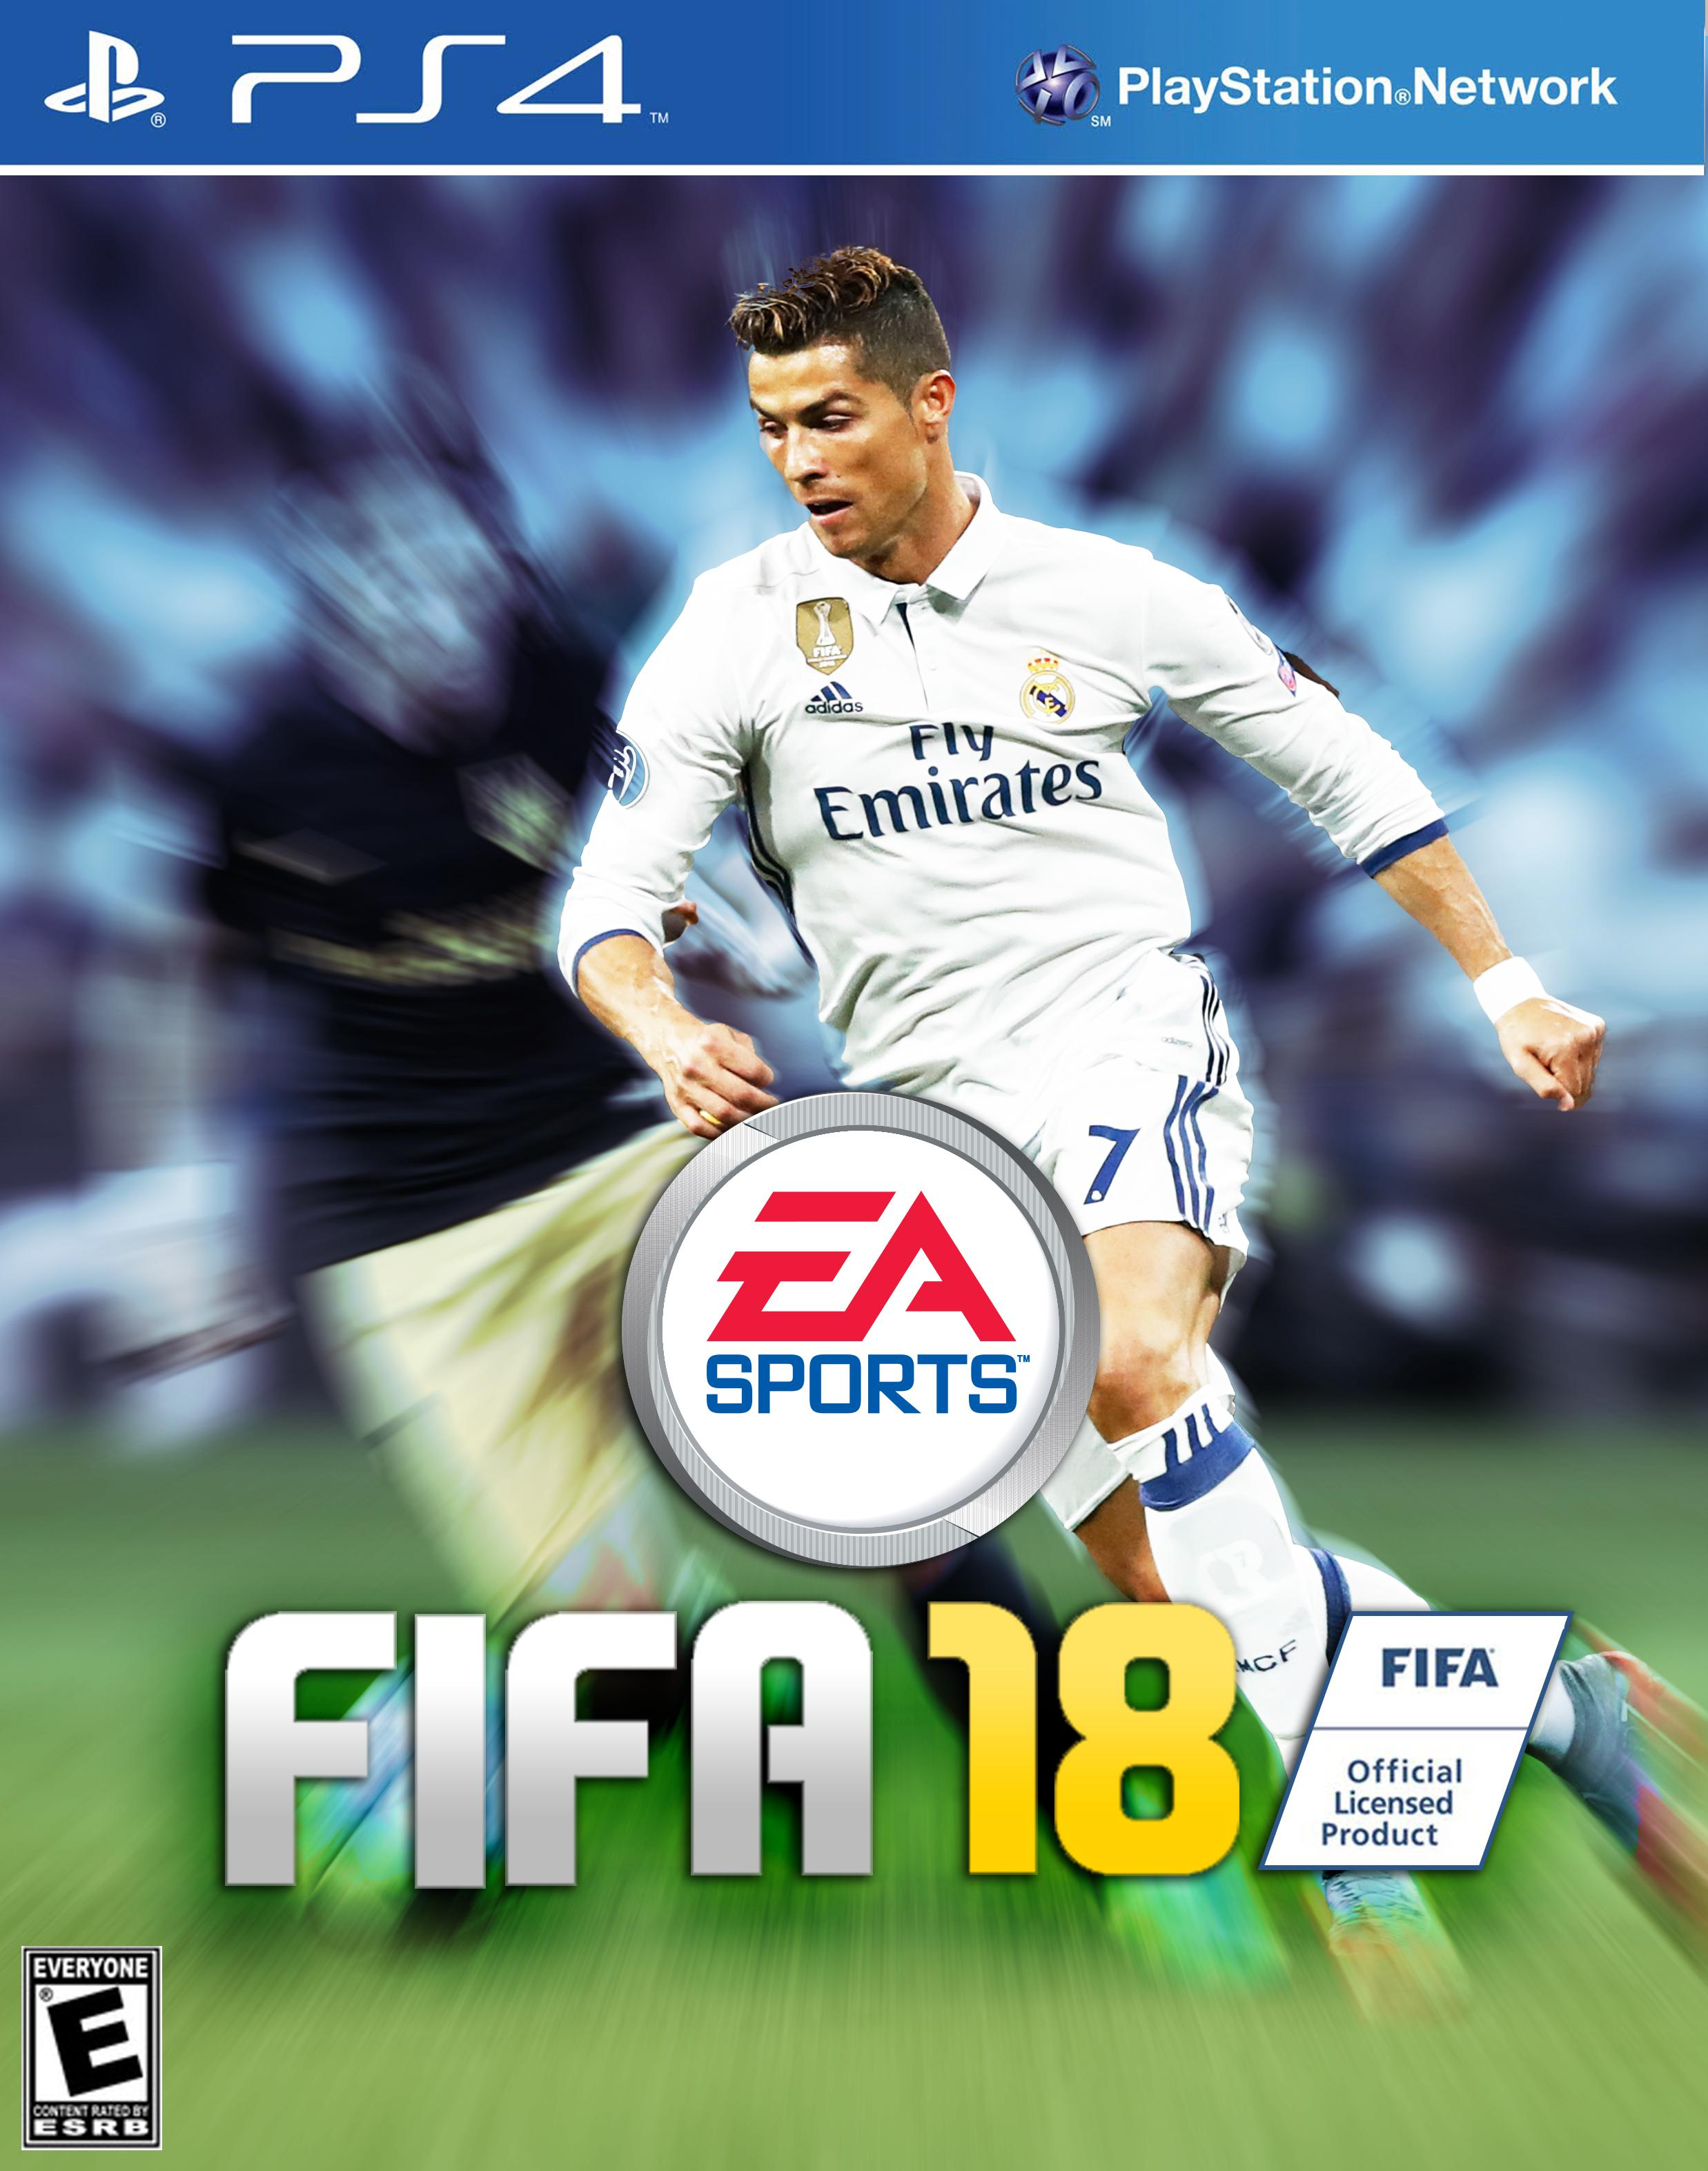 We were so sure that Ronaldo was going to be the cover star we mocked our own version up